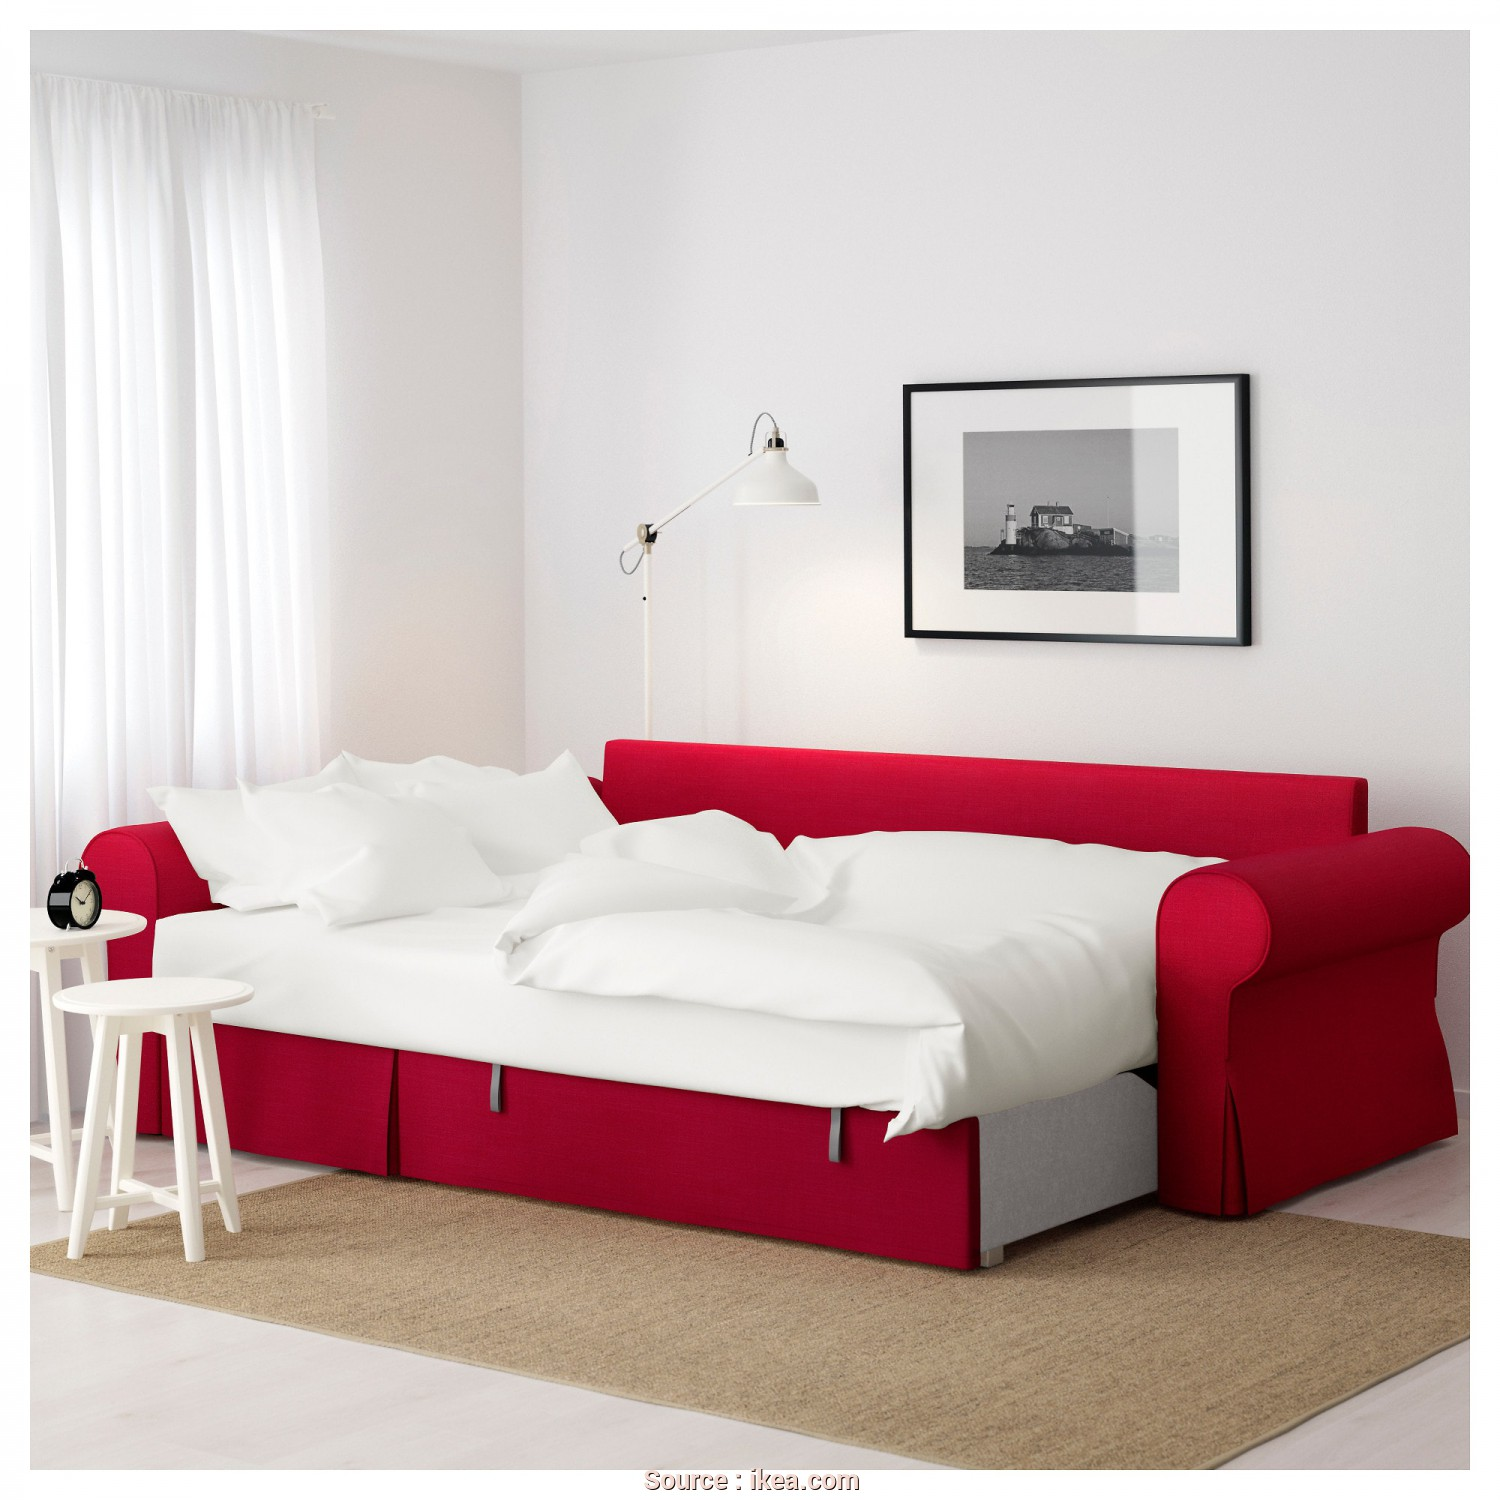 Backabro Sofa, With Chaise Longue £725 Ikea, Semplice BACKABRO Sofa, With Chaise Longue Nordvalla Red